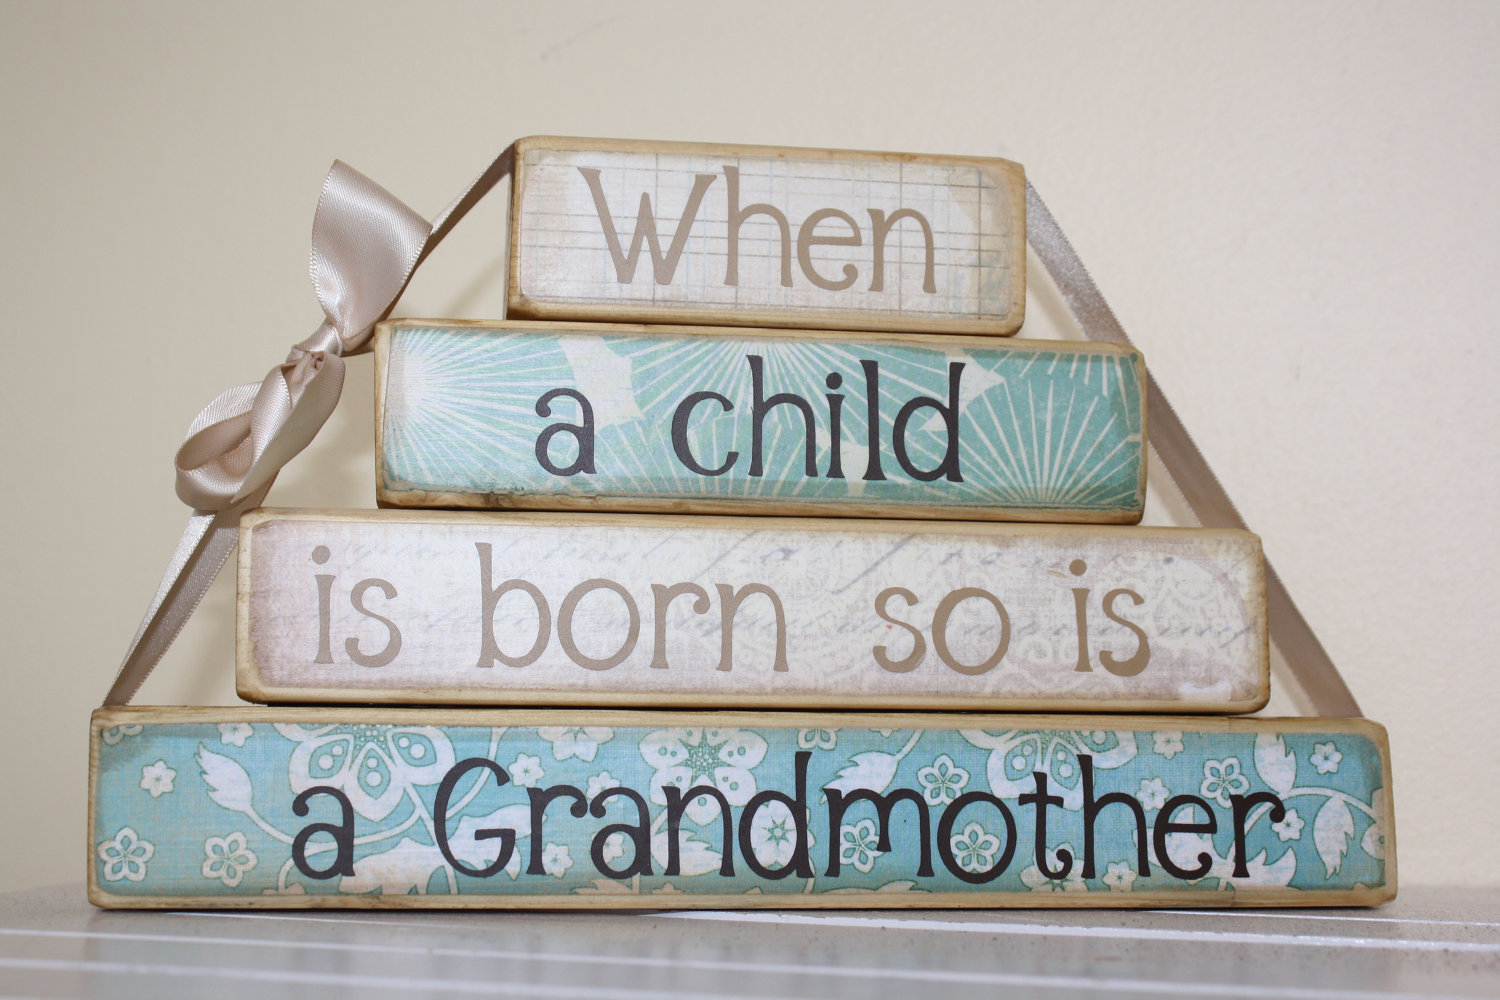 When A Child Is Born So Is A Grandmother.